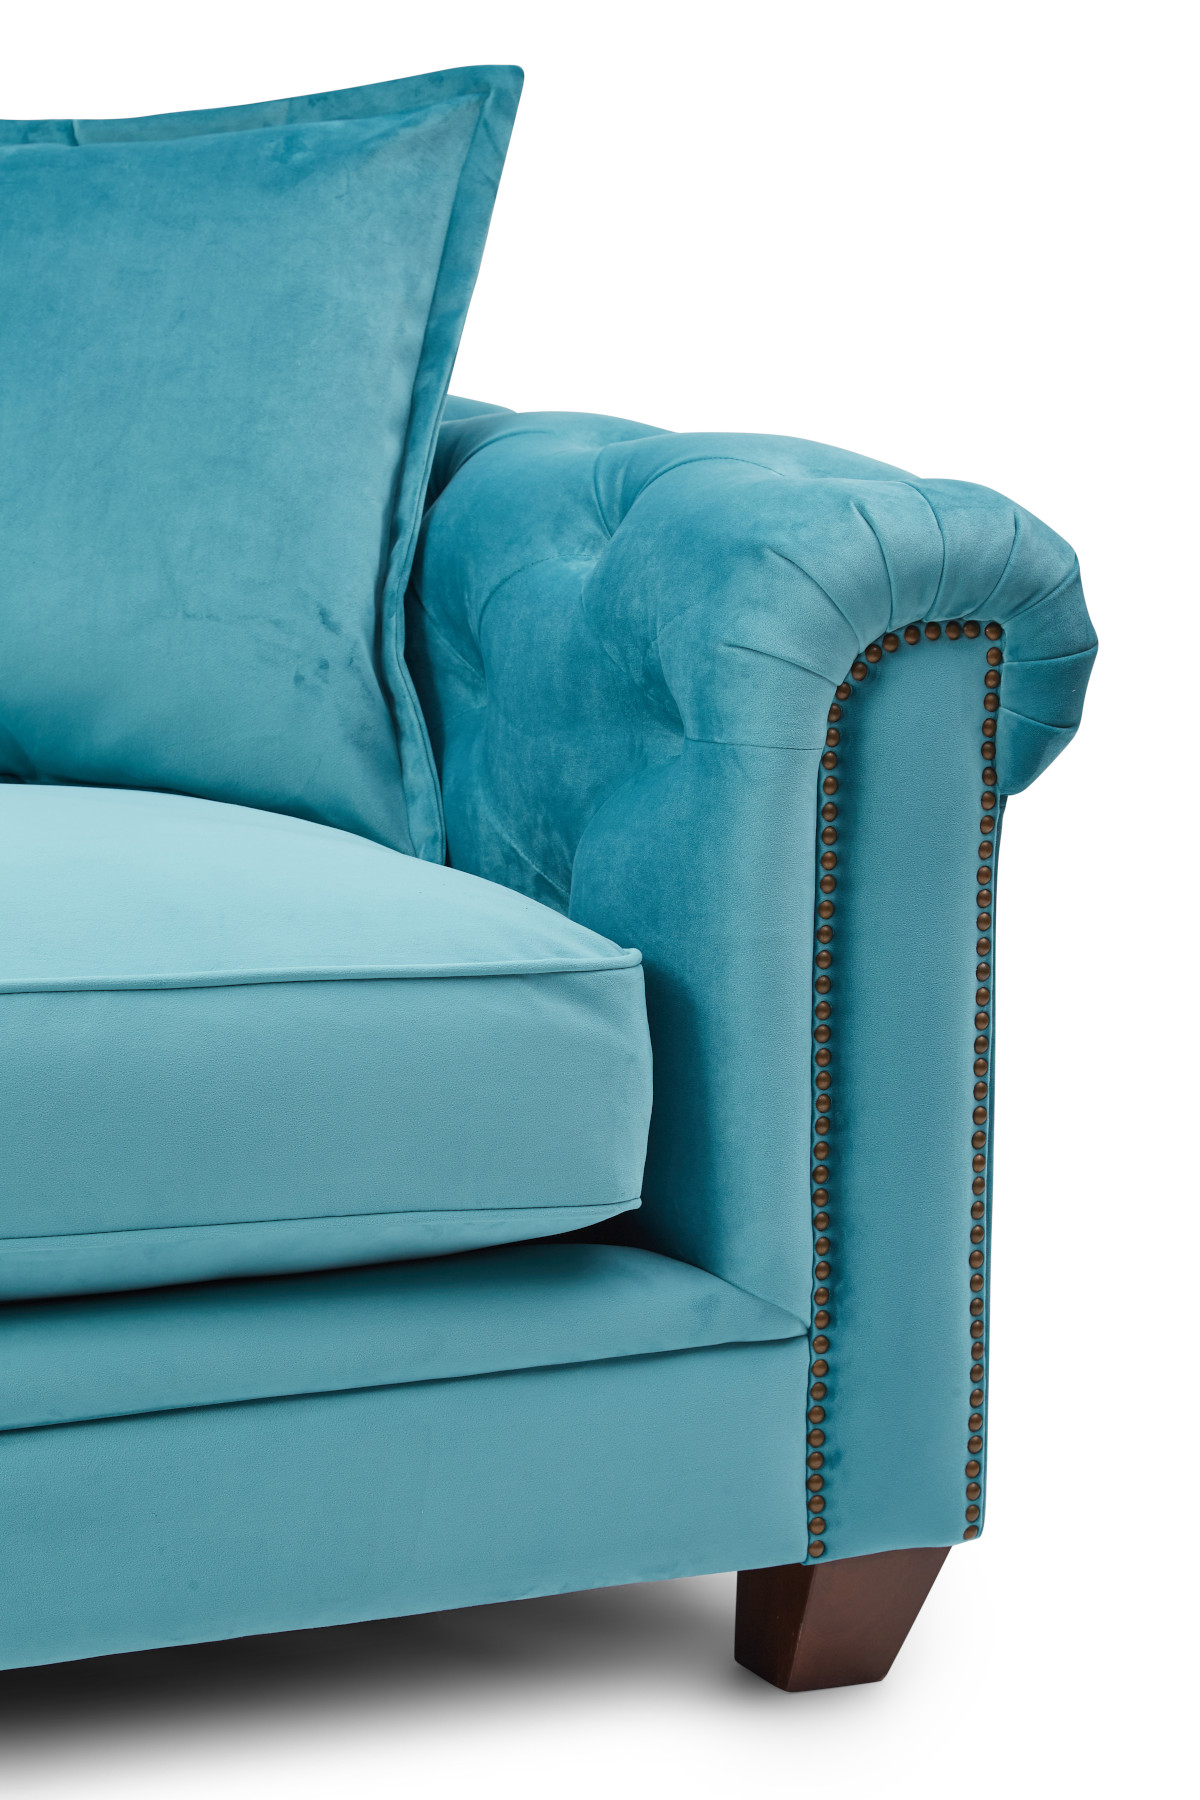 Kennedy 2 Seater Hermit Sofa - Teal